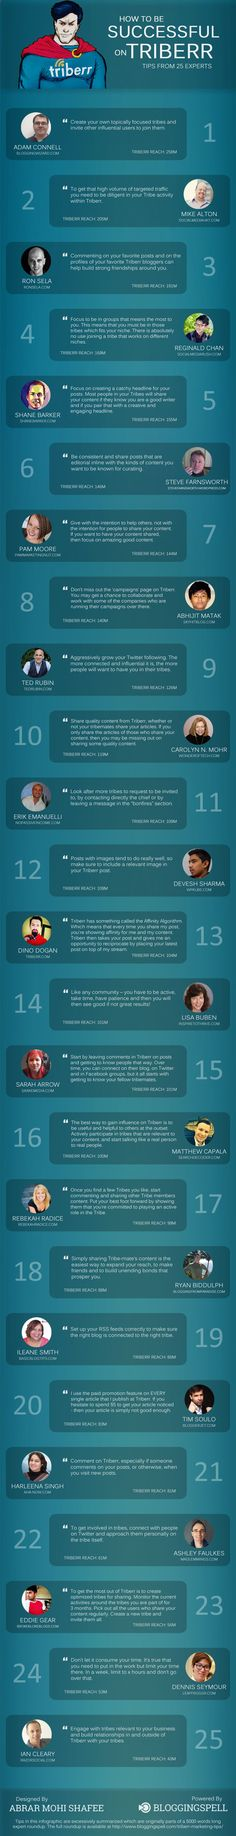 25 Experts Share How to Get More Traction from Triberr http://basicblogtips.com/triberr-infographic.html?utm_content=bufferf67b6&utm_medium=social&utm_source=pinterest.com&utm_campaign=buffer via Ileane Smith